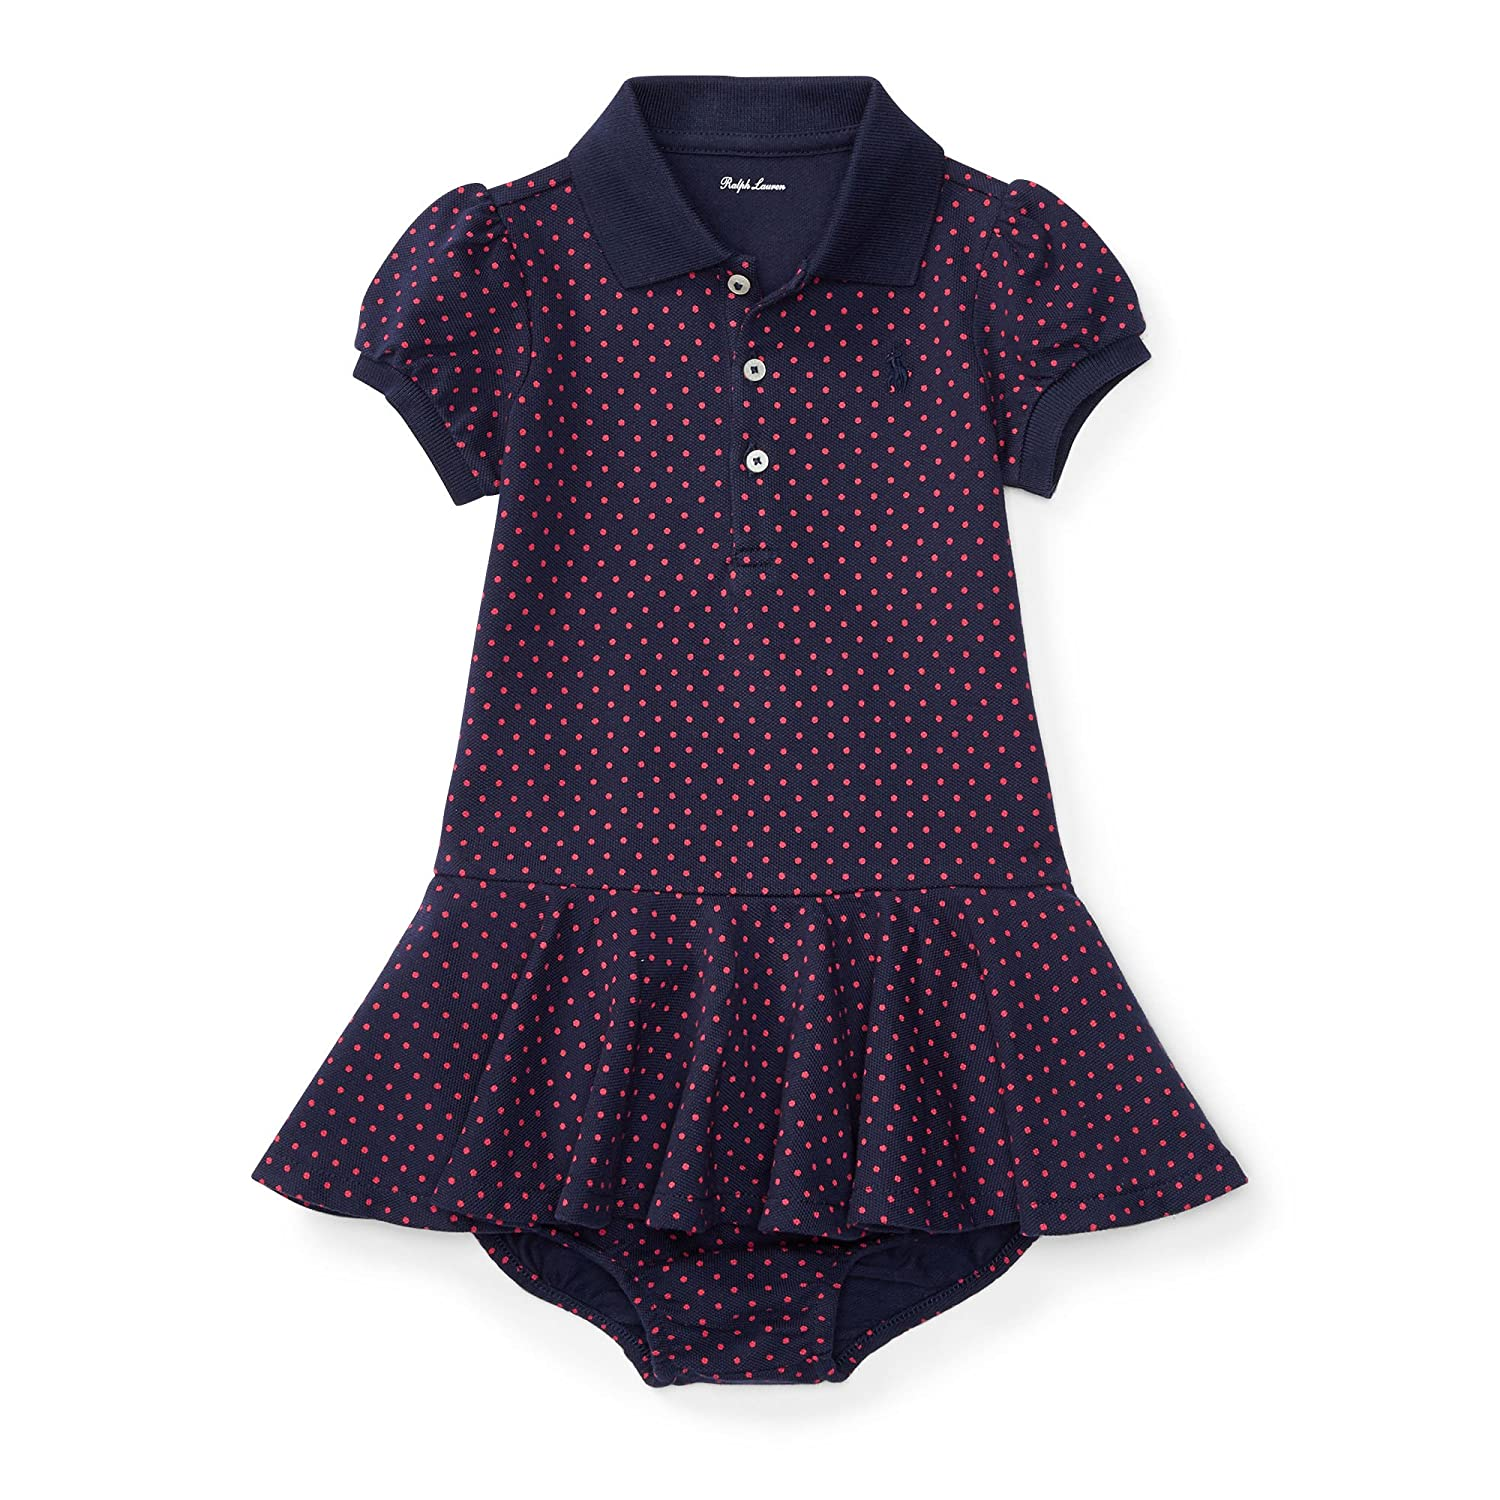 7aa1528bd Top10: Ralph Lauren Baby Girls Polka-Dot Polo Dress & Bloomer Set Navy/Pink